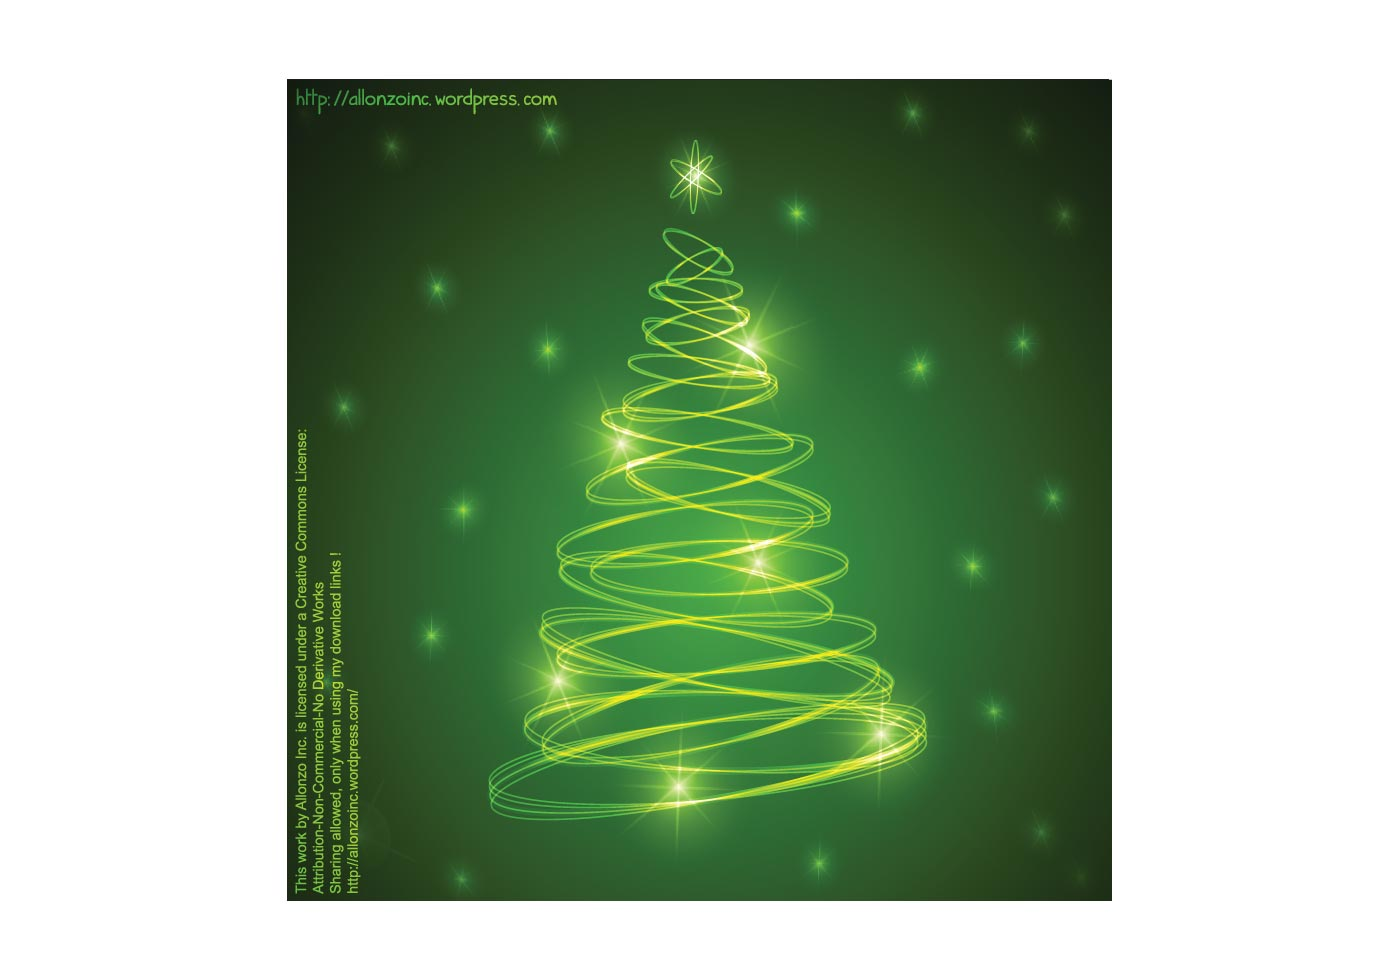 Abstract Christmas Tree Background 2 Download Free